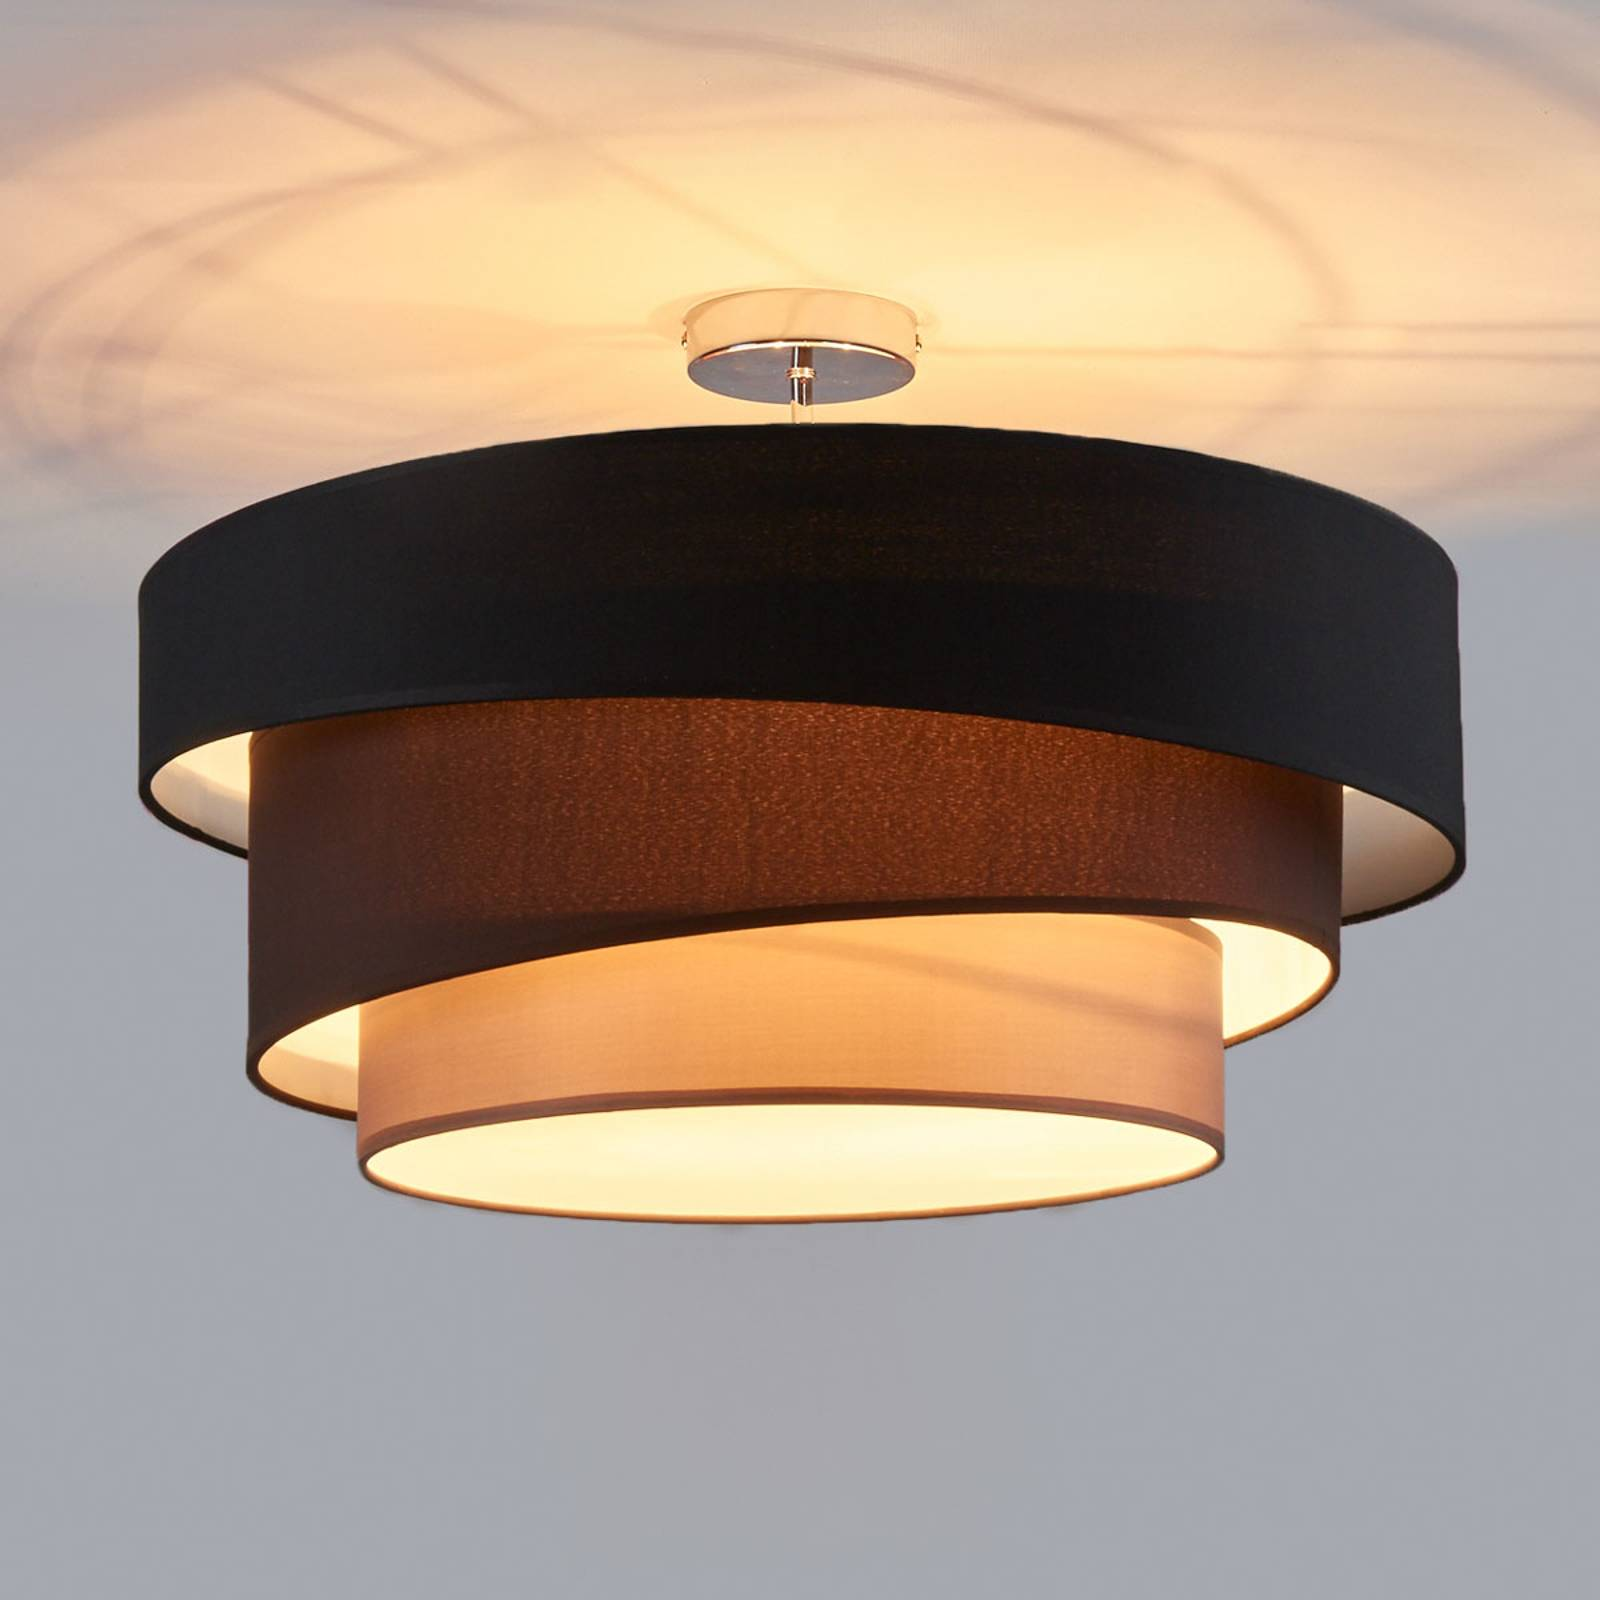 Attractive ceiling lamp Melia, black and brown from Lindby